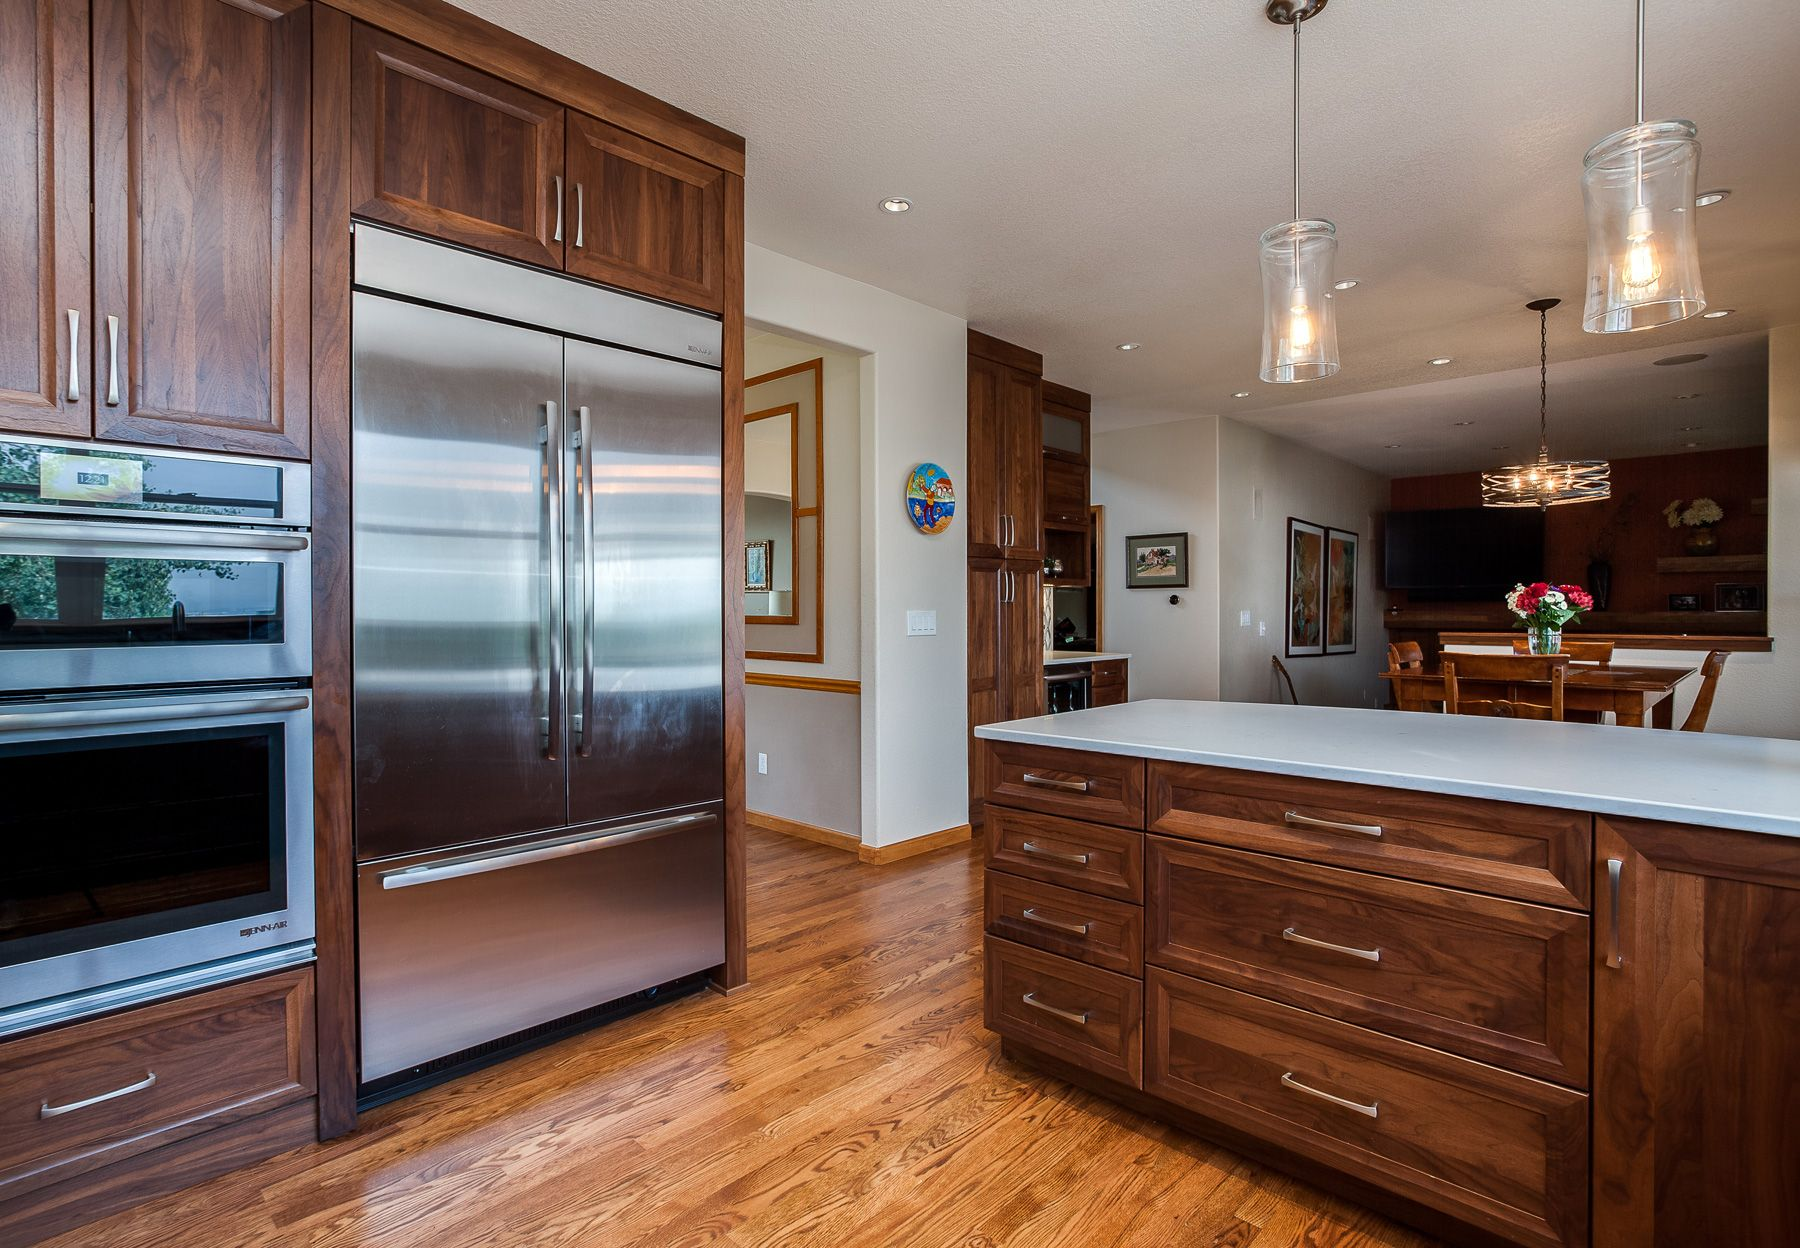 This Is Transitional Modern Design Shaker Cabinets Stained Glass Backsplash Walnut W Modern Kitchen Remodel Kitchen Remodel Design Traditional Kitchen Remodel